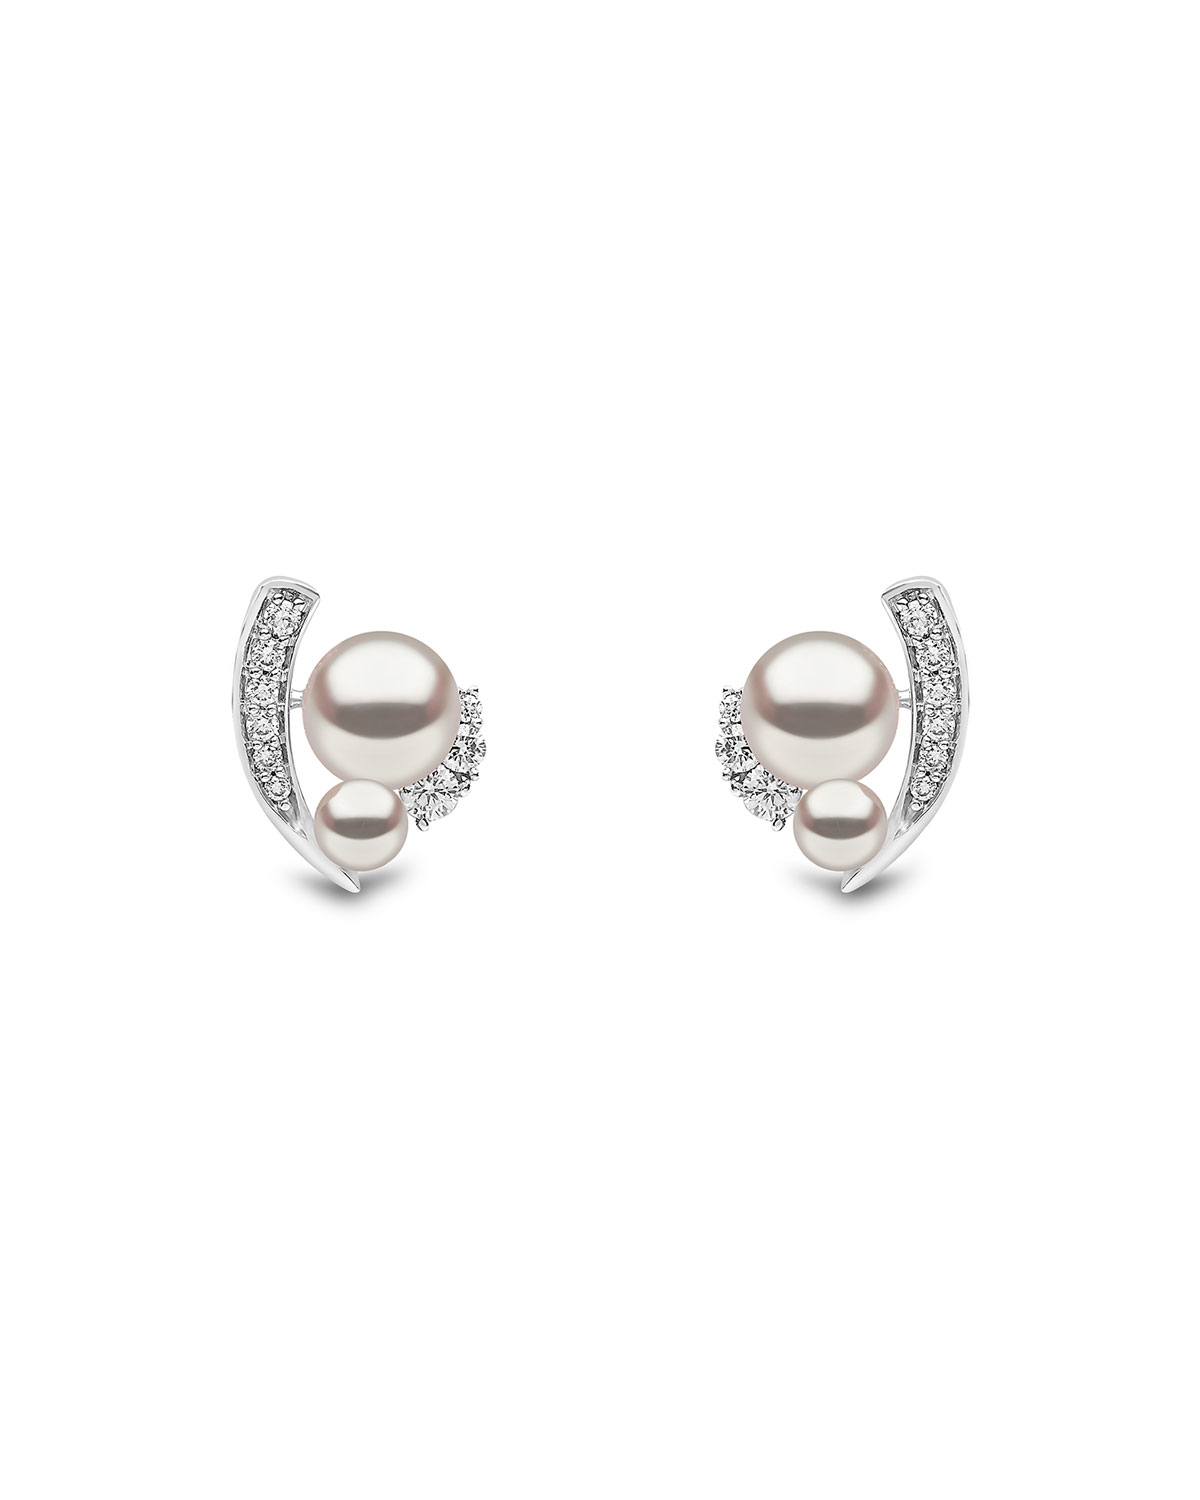 YOKO LONDON 18K White Gold Pearl & Asymmetric Diamond Stud Earrings